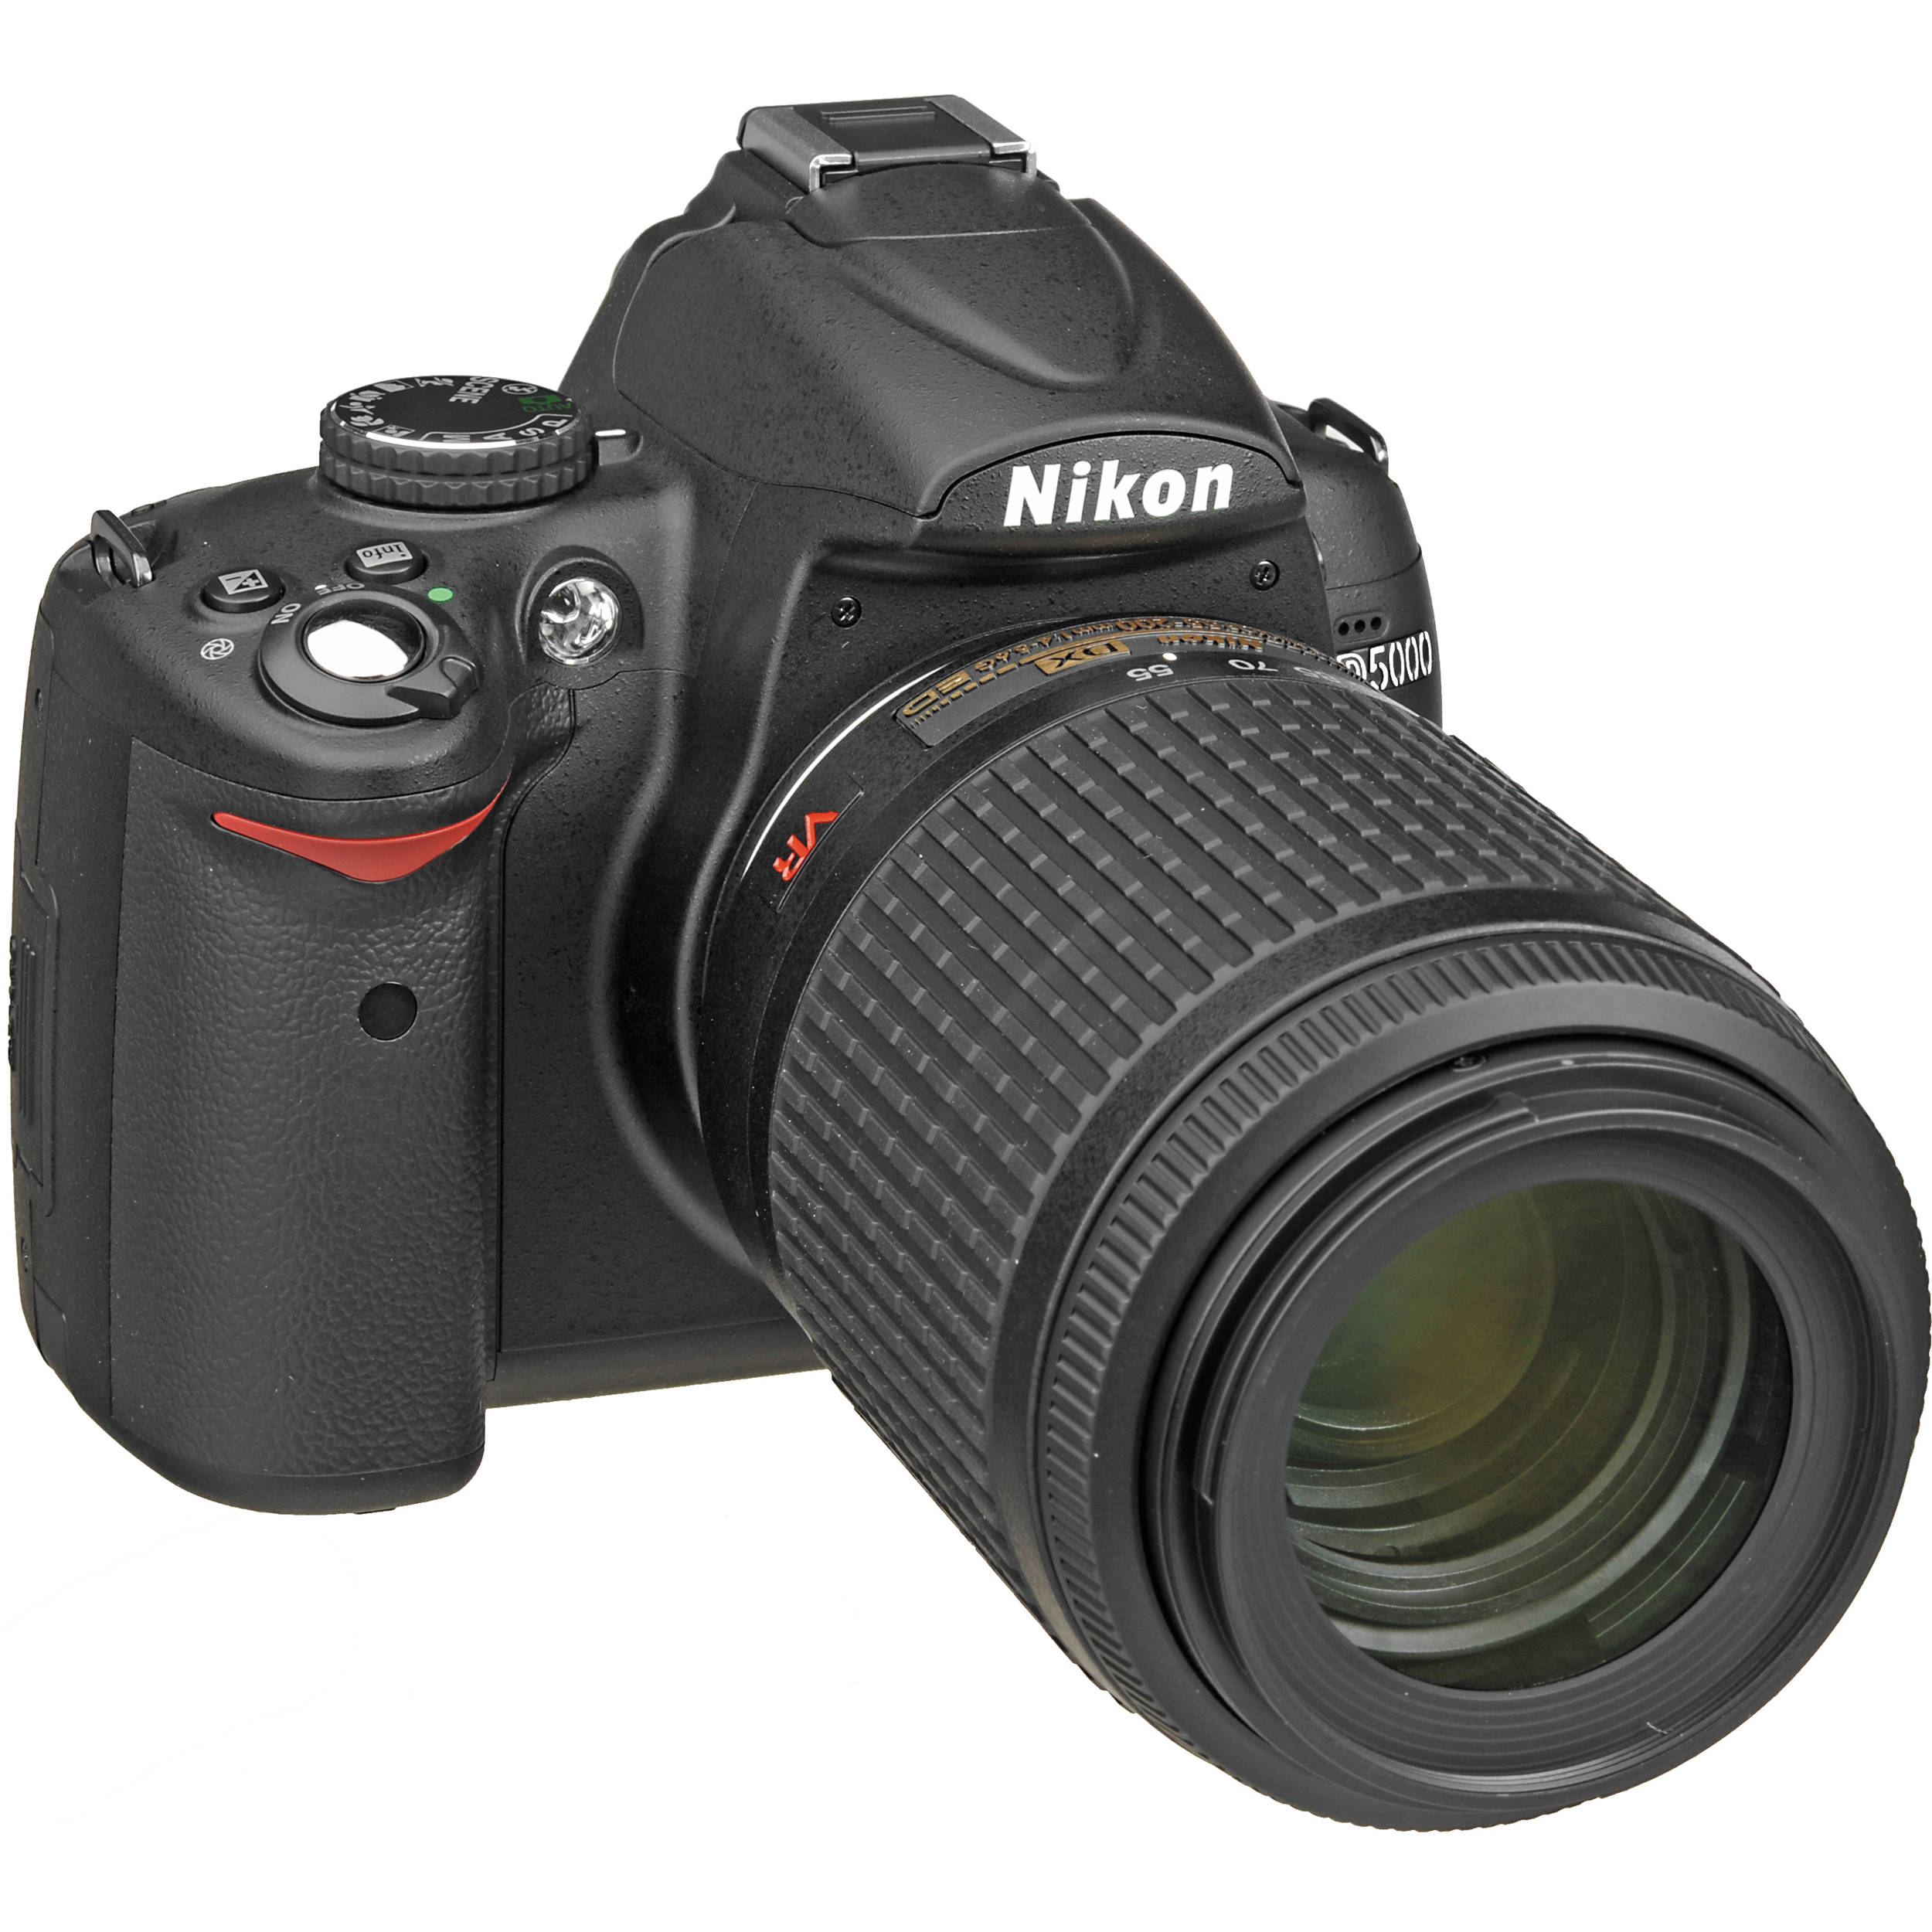 Nikon D5000 Digital SLR Camera with 55-200mm VR f/4-5.6G Lens